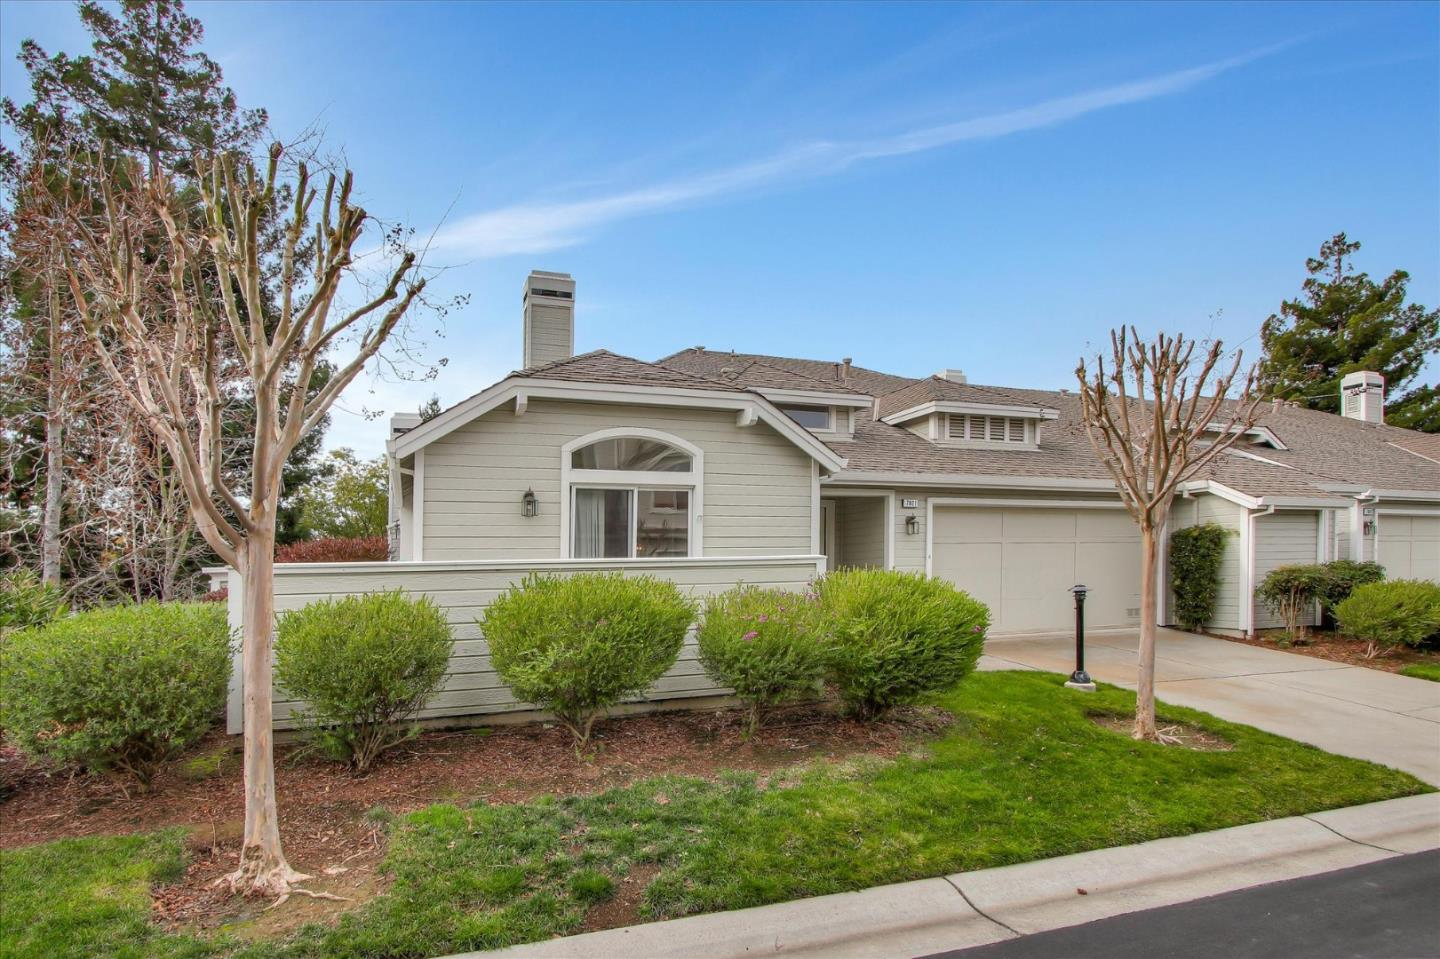 7821 Prestwick CIR, Evergreen, California